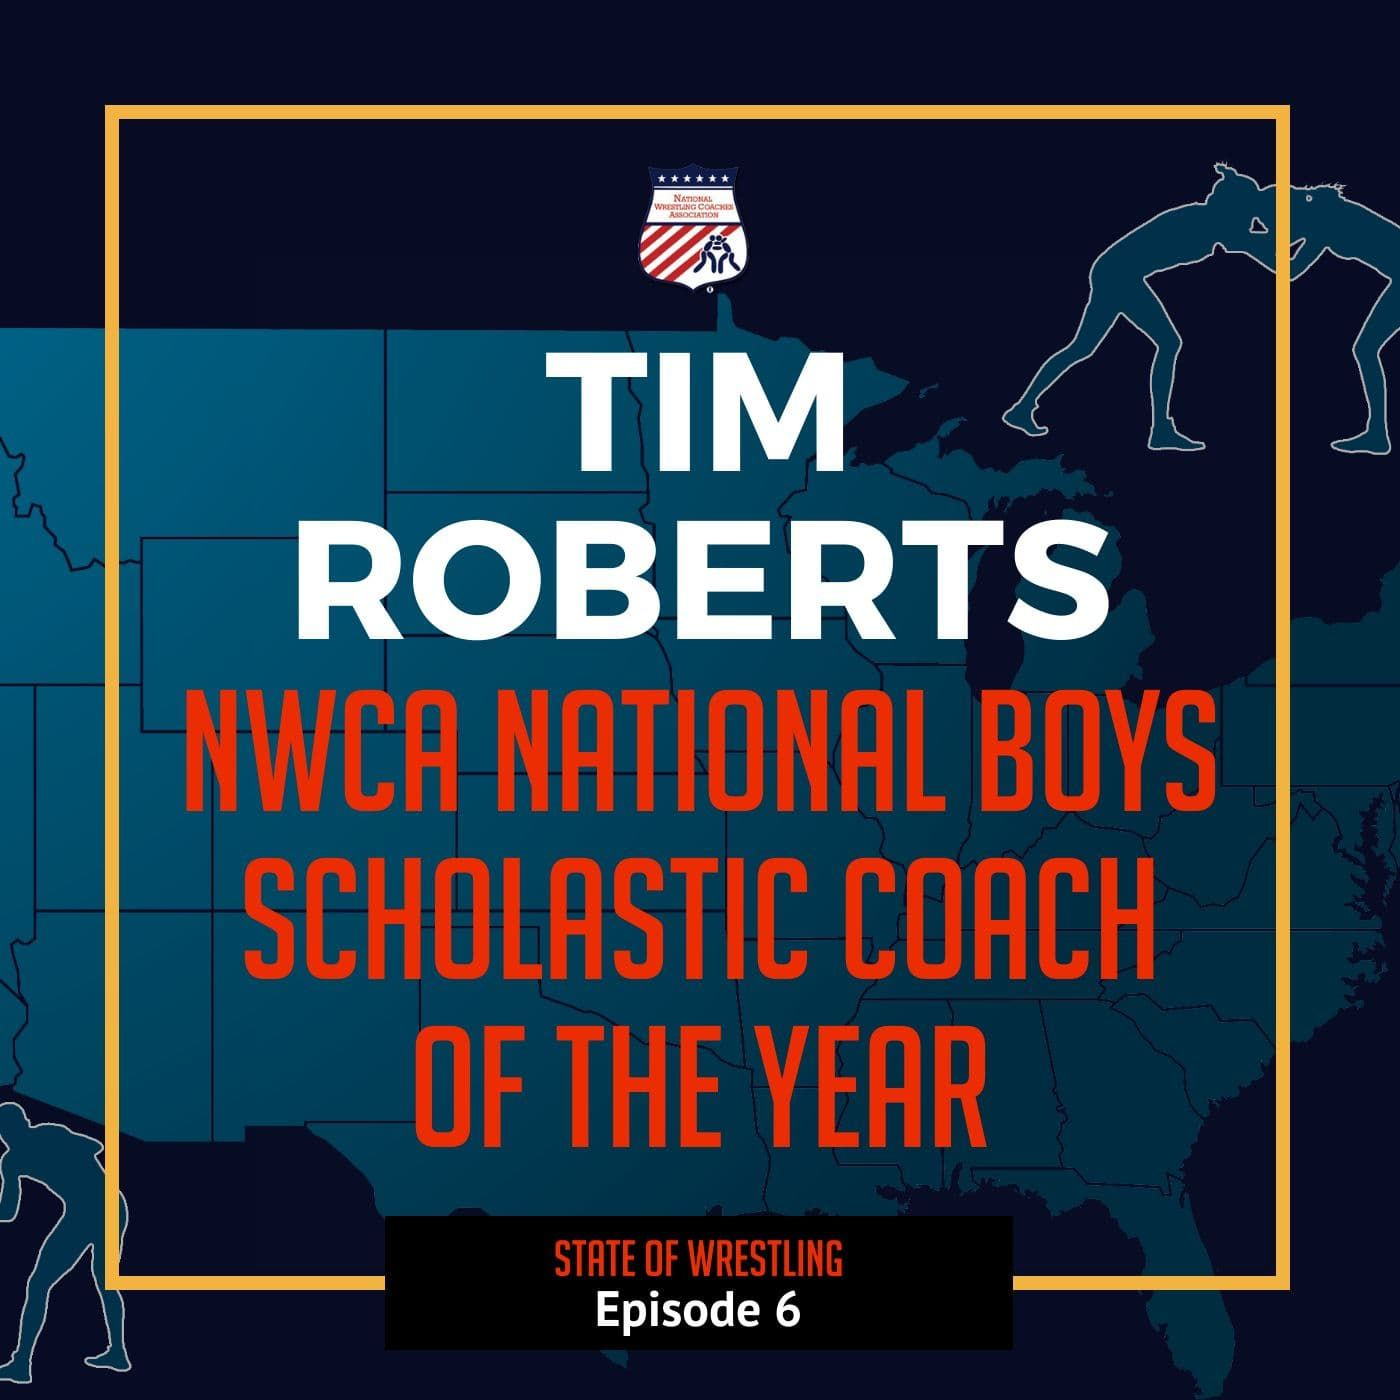 NWCA National Scholastic Boys Coach of the Year Tim Roberts of Dundee (Mich.)